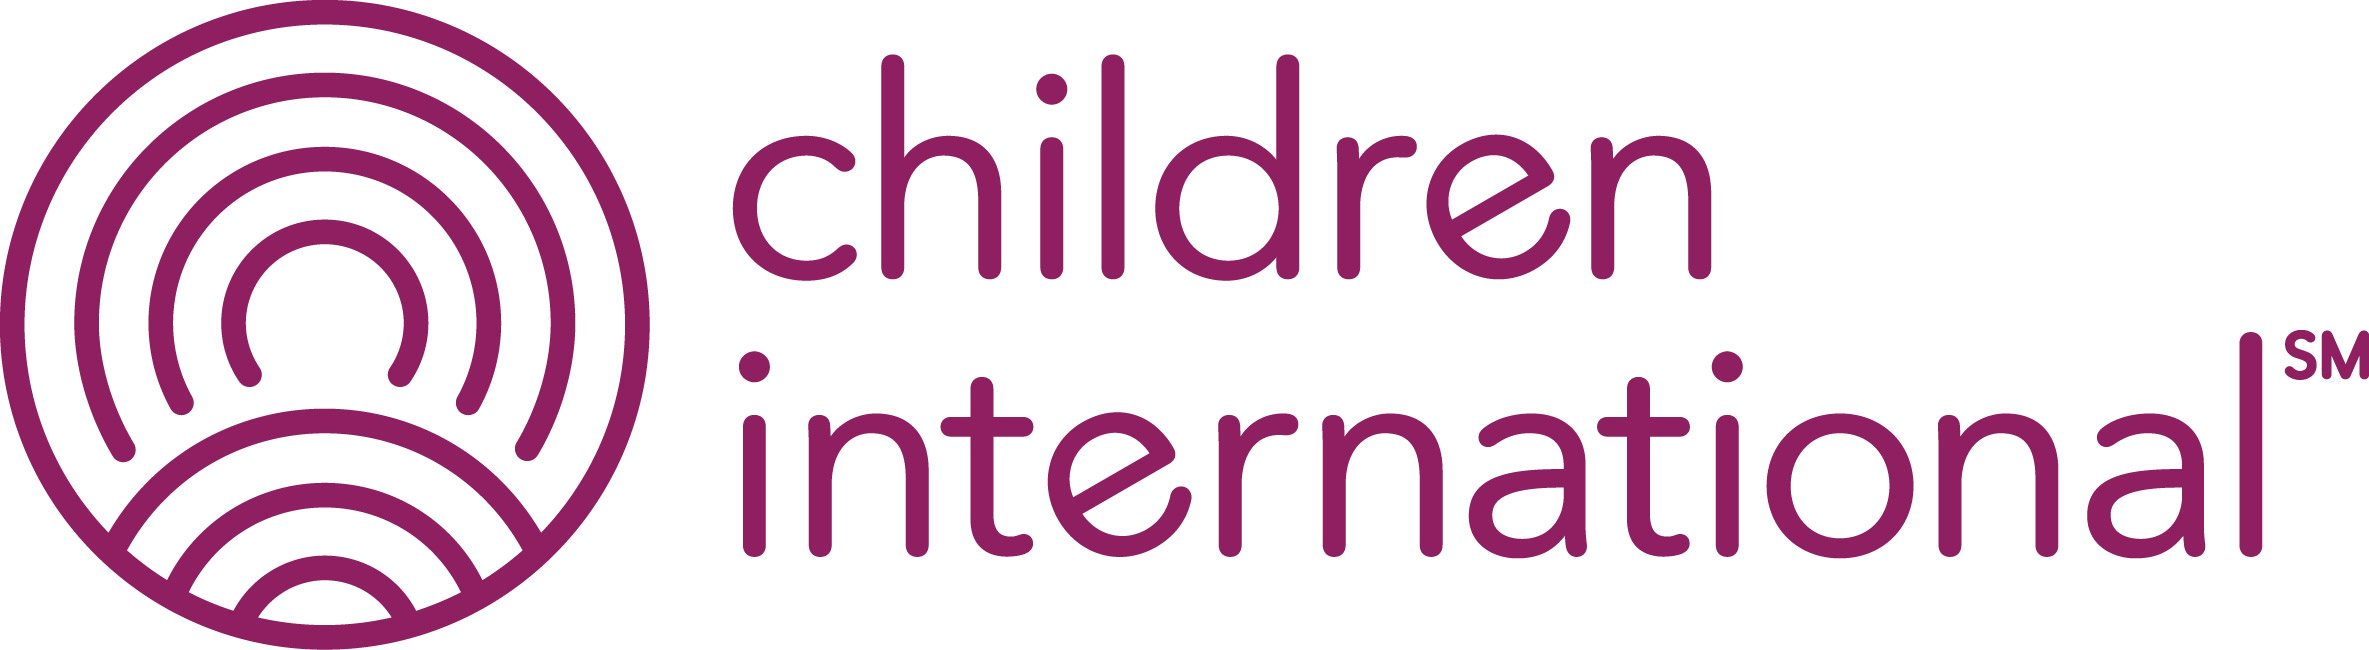 Children International - Bicol